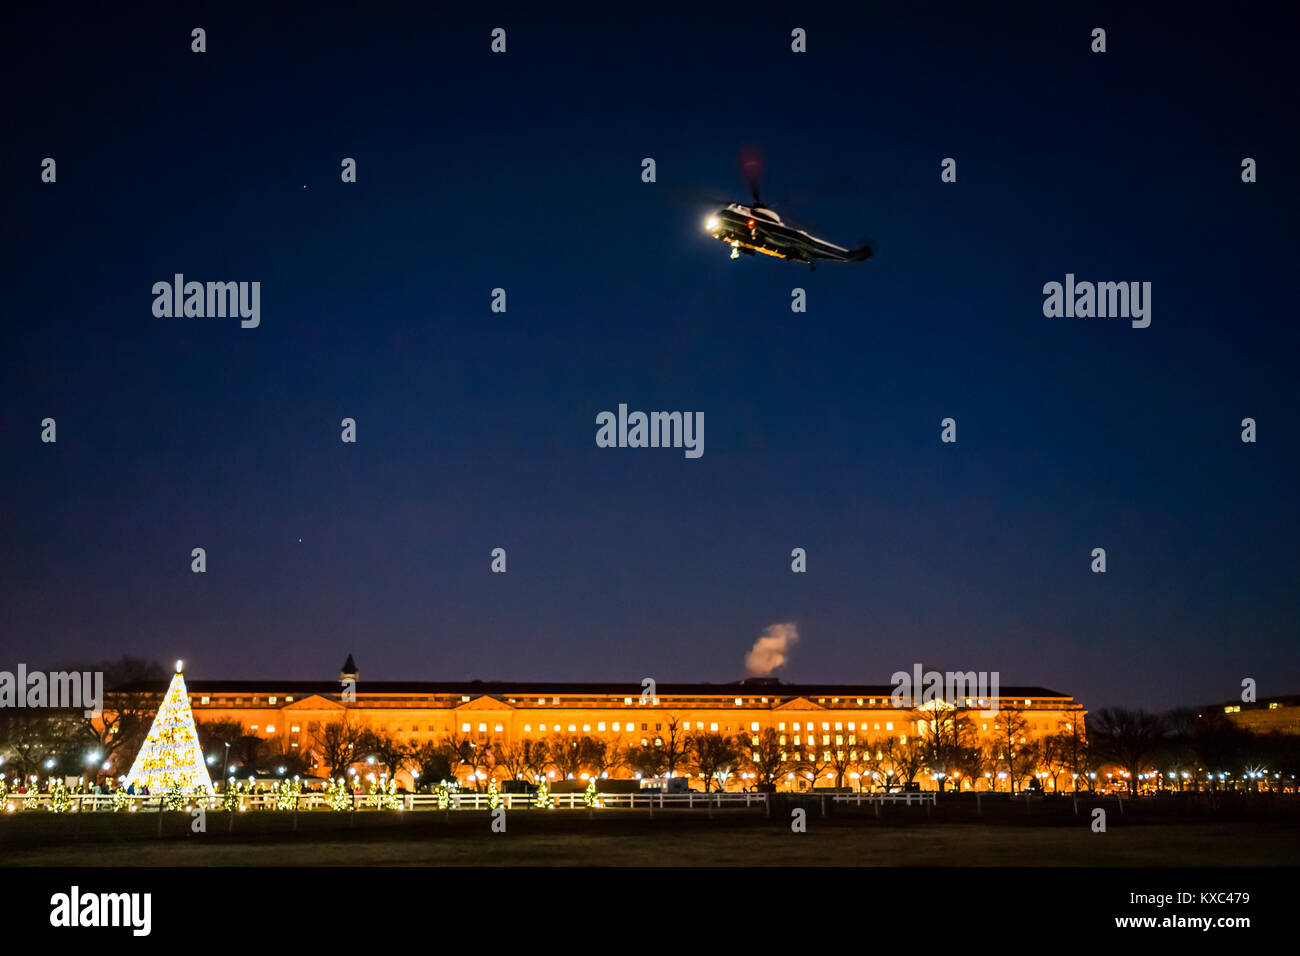 Washington DC, USA - December 28, 2017: President Donald J. Trump's Marine One helicopter flying landing by - Stock Image